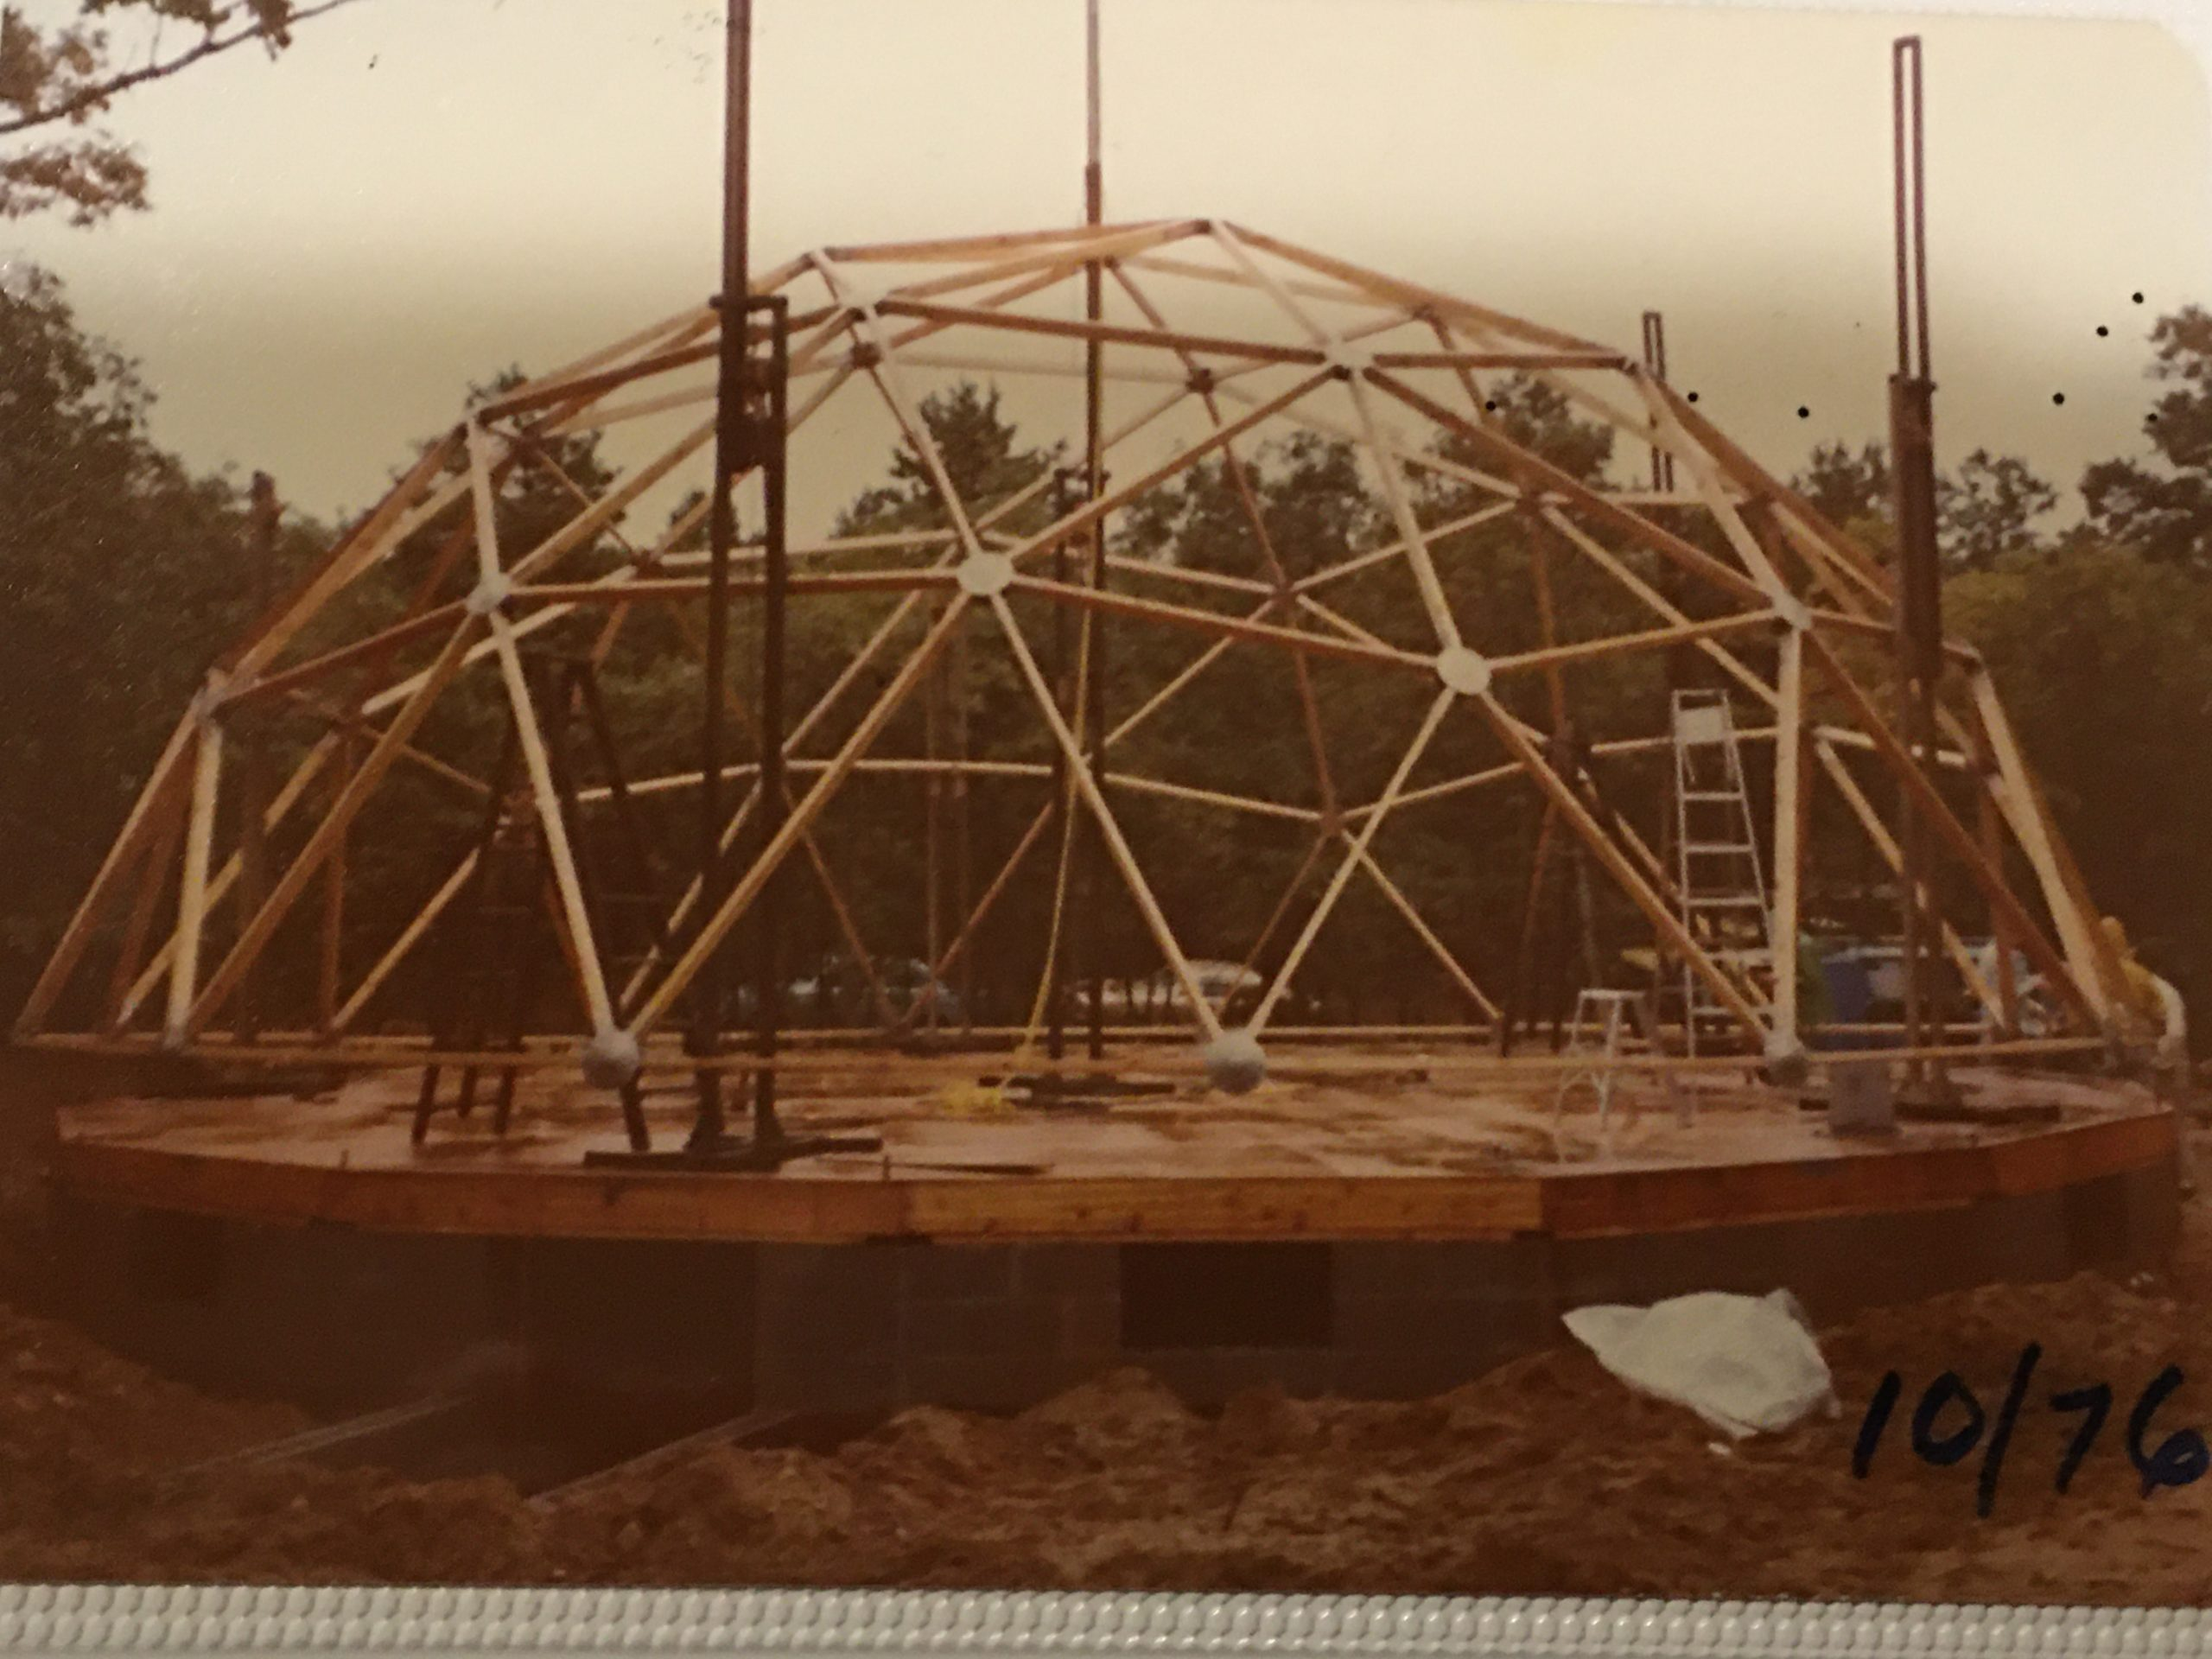 In 1976, the top of the dome was set on pump jacks to be raised.